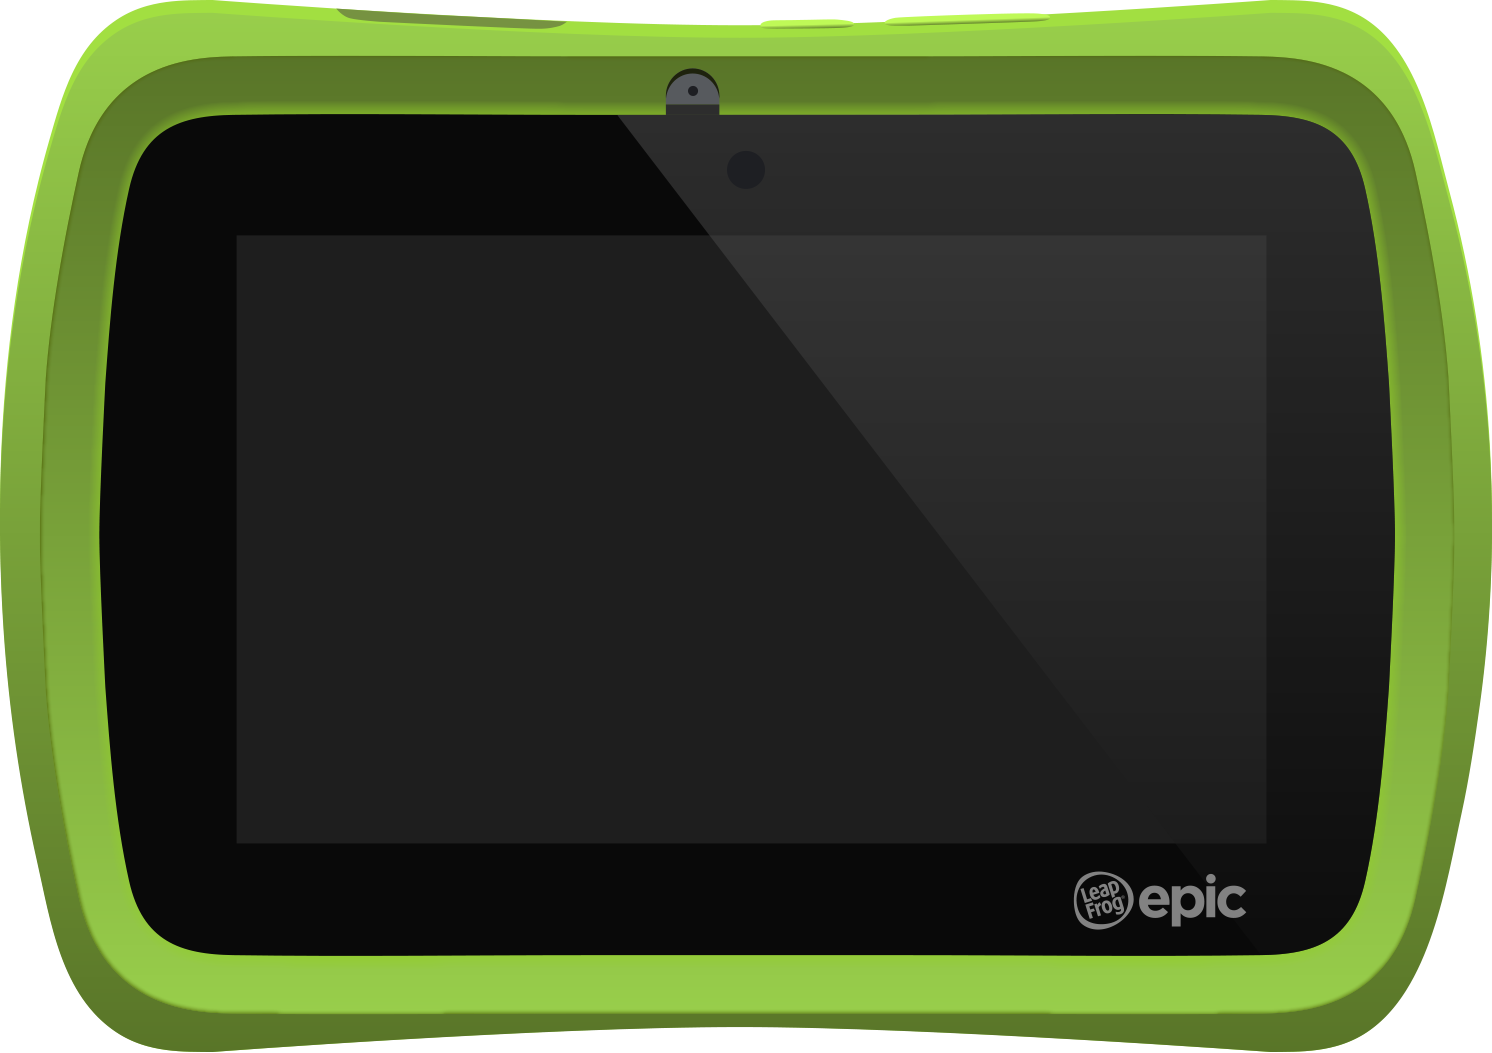 LeapFrog Epic - Wikipedia